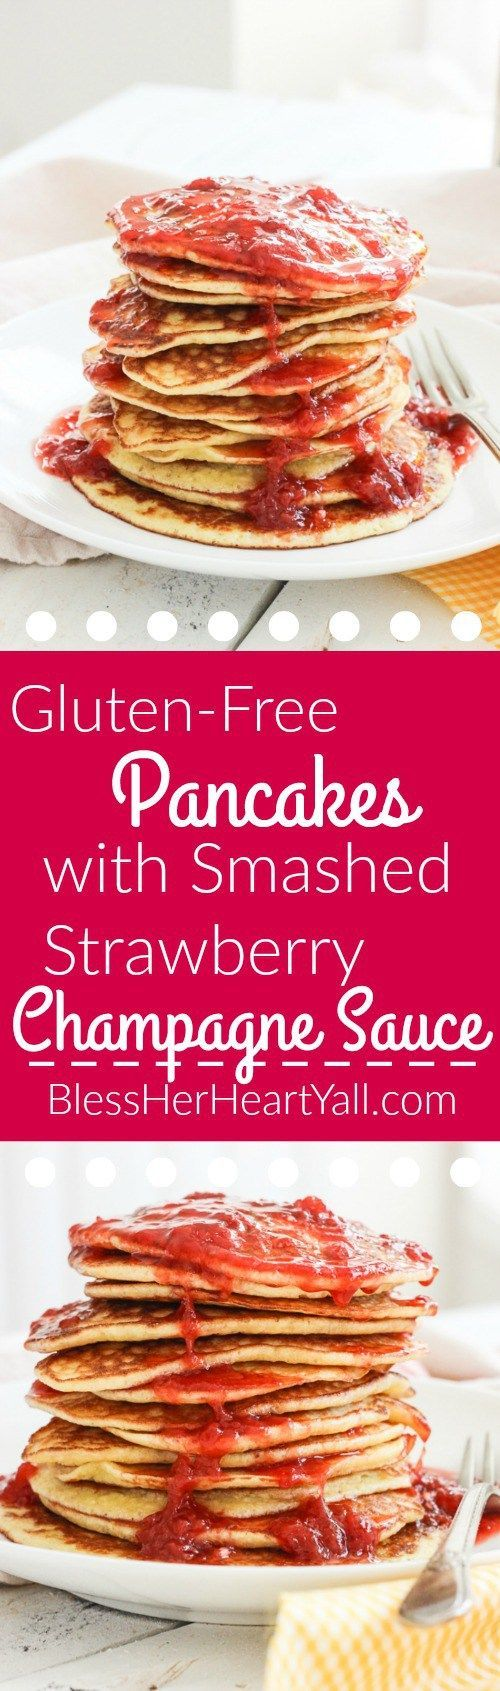 These gluten-free pancakes with smashed strawberry sauce recipe is one for the books!  The pancakes are light and fluffy (and yes, I promise are gluten-free!) with a touch of coconut's sweetness.  The smashed strawberry champagne sauce is a fun topper, with strawberries, lemon juice, and champagne caught up together in a thick, warm syrupy sauce to smother your pancakes in!  Breakfast is now the best meal of the day!